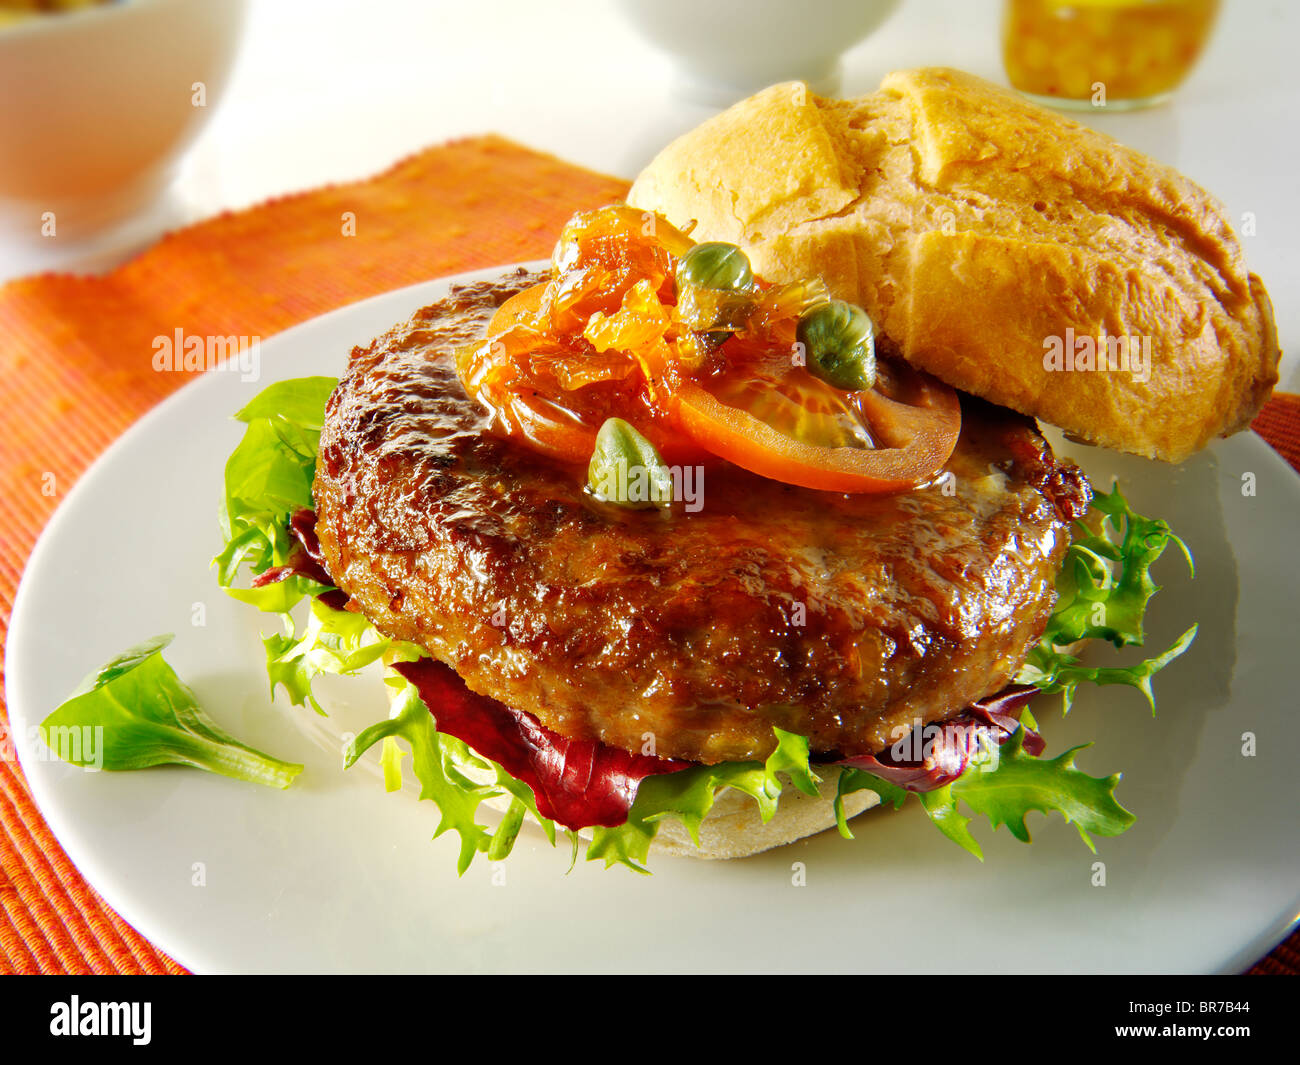 Beef burgers in a bread bun with salad & garnish - Stock Image